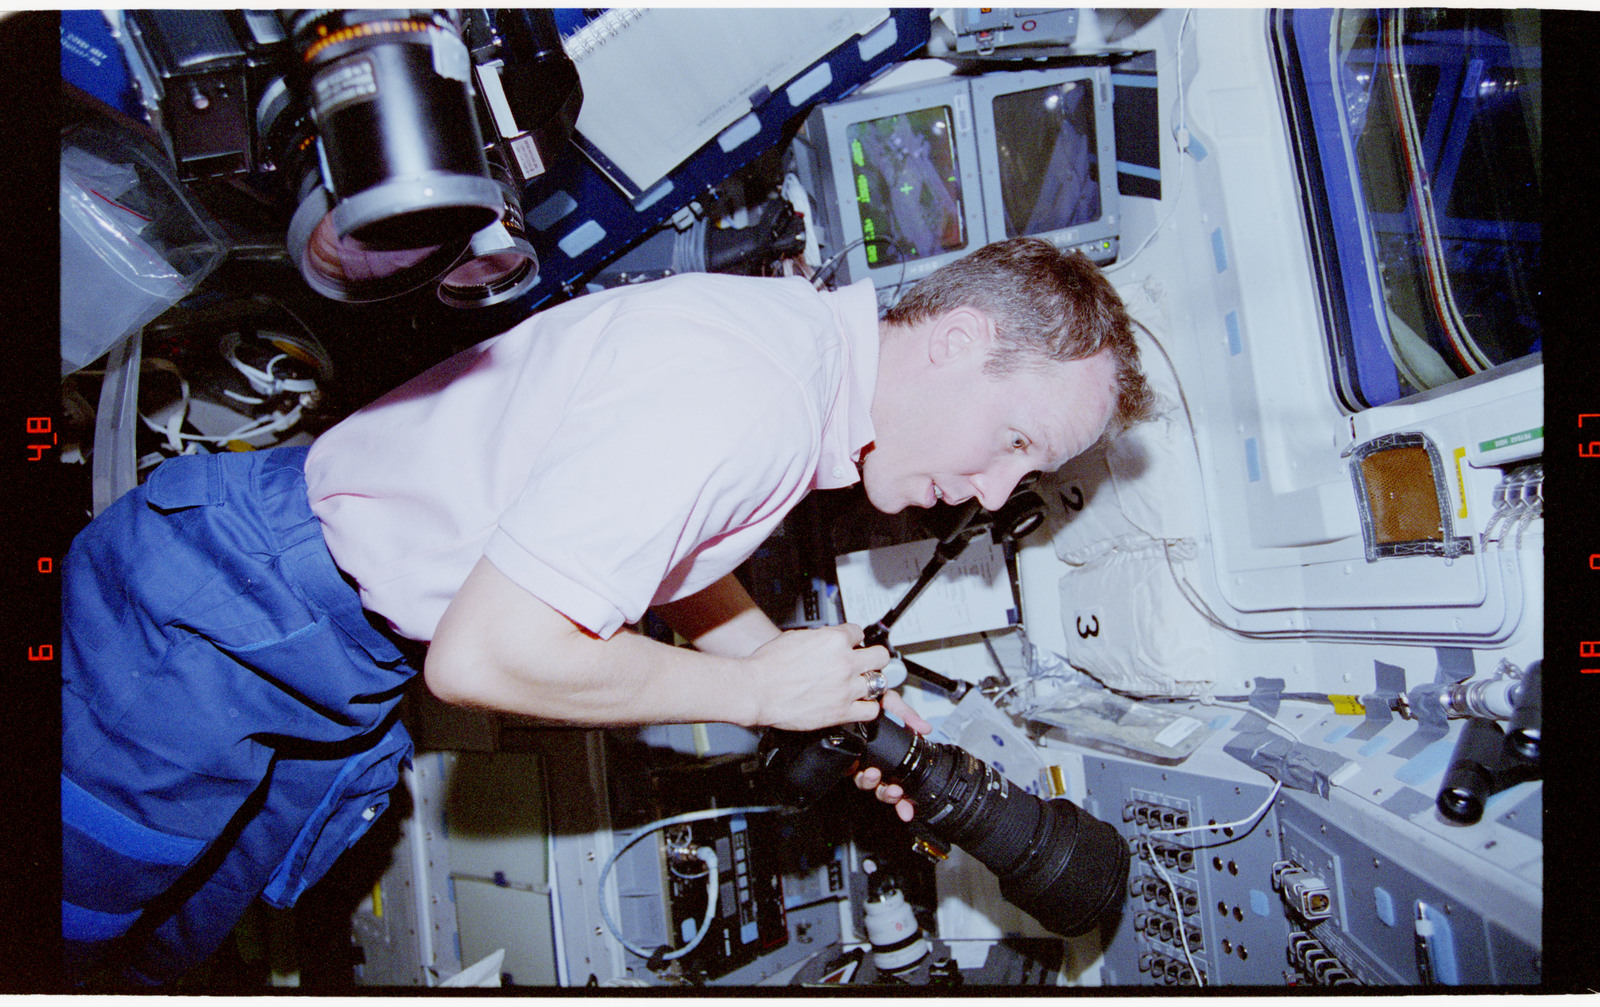 STS068-41-014 - STS-068 - STS-68 crew on orbiter flight deck